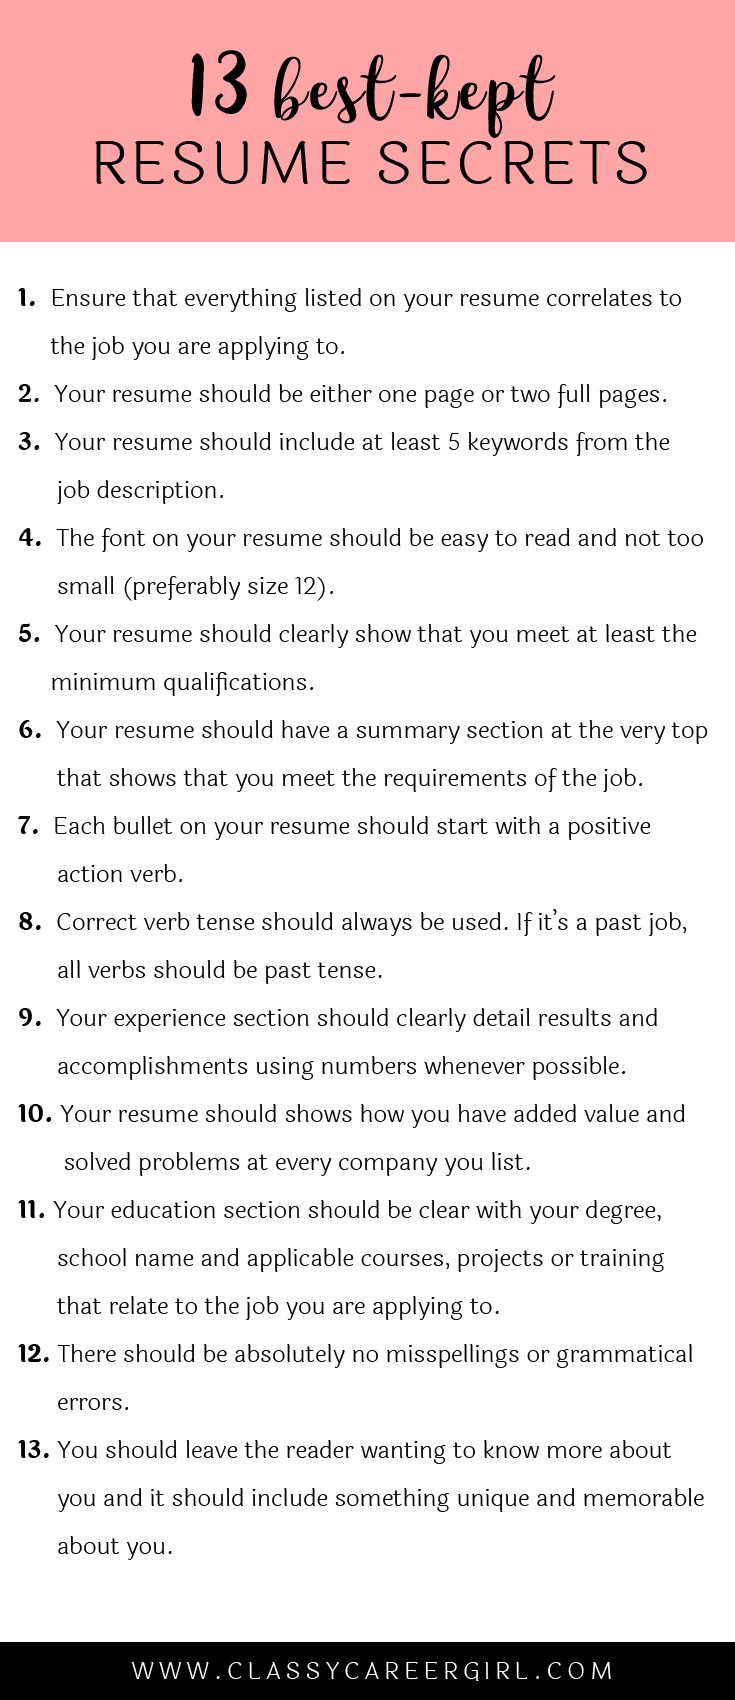 Opposenewapstandardsus  Outstanding  Ideas About Resume On Pinterest  Cv Format Resume Cv And  With Outstanding Some Hiring Managers Will Toss Your Resume Out If You Dont Know These  With Alluring Optimal Resume Also Free Resume Templates In Addition Resume Paper And Receptionist Resume As Well As Writing A Resume Additionally Free Resume Builder From Pinterestcom With Opposenewapstandardsus  Outstanding  Ideas About Resume On Pinterest  Cv Format Resume Cv And  With Alluring Some Hiring Managers Will Toss Your Resume Out If You Dont Know These  And Outstanding Optimal Resume Also Free Resume Templates In Addition Resume Paper From Pinterestcom